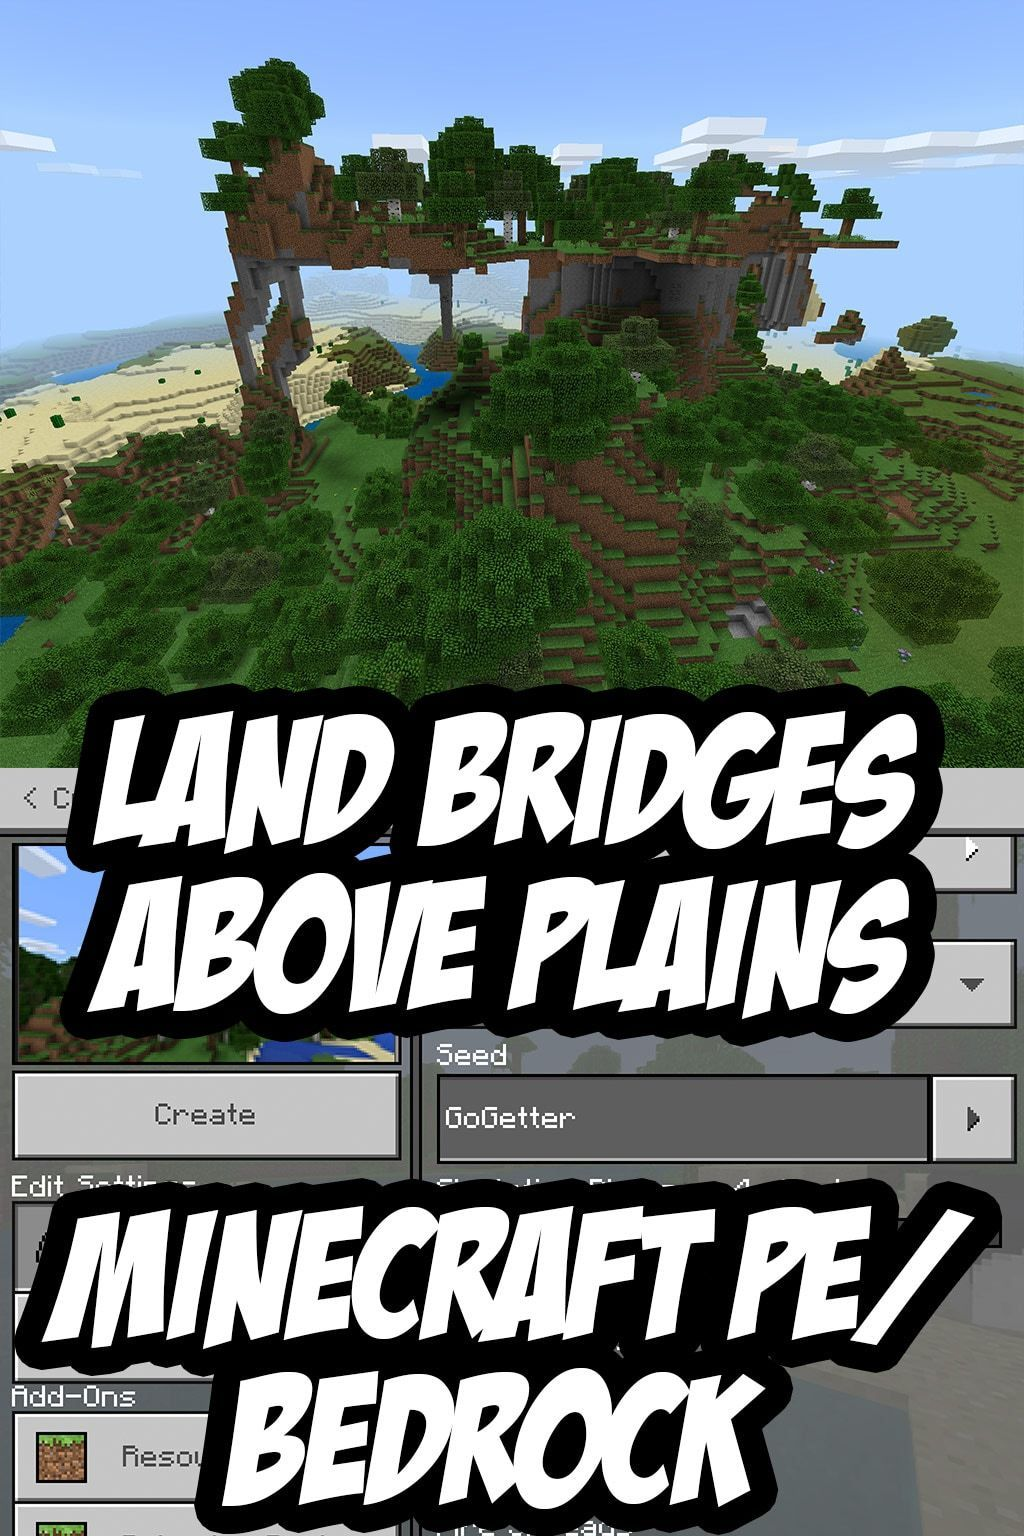 Minecraft PE/Bedrock Edition Extreme Hill Seed: GoGetter